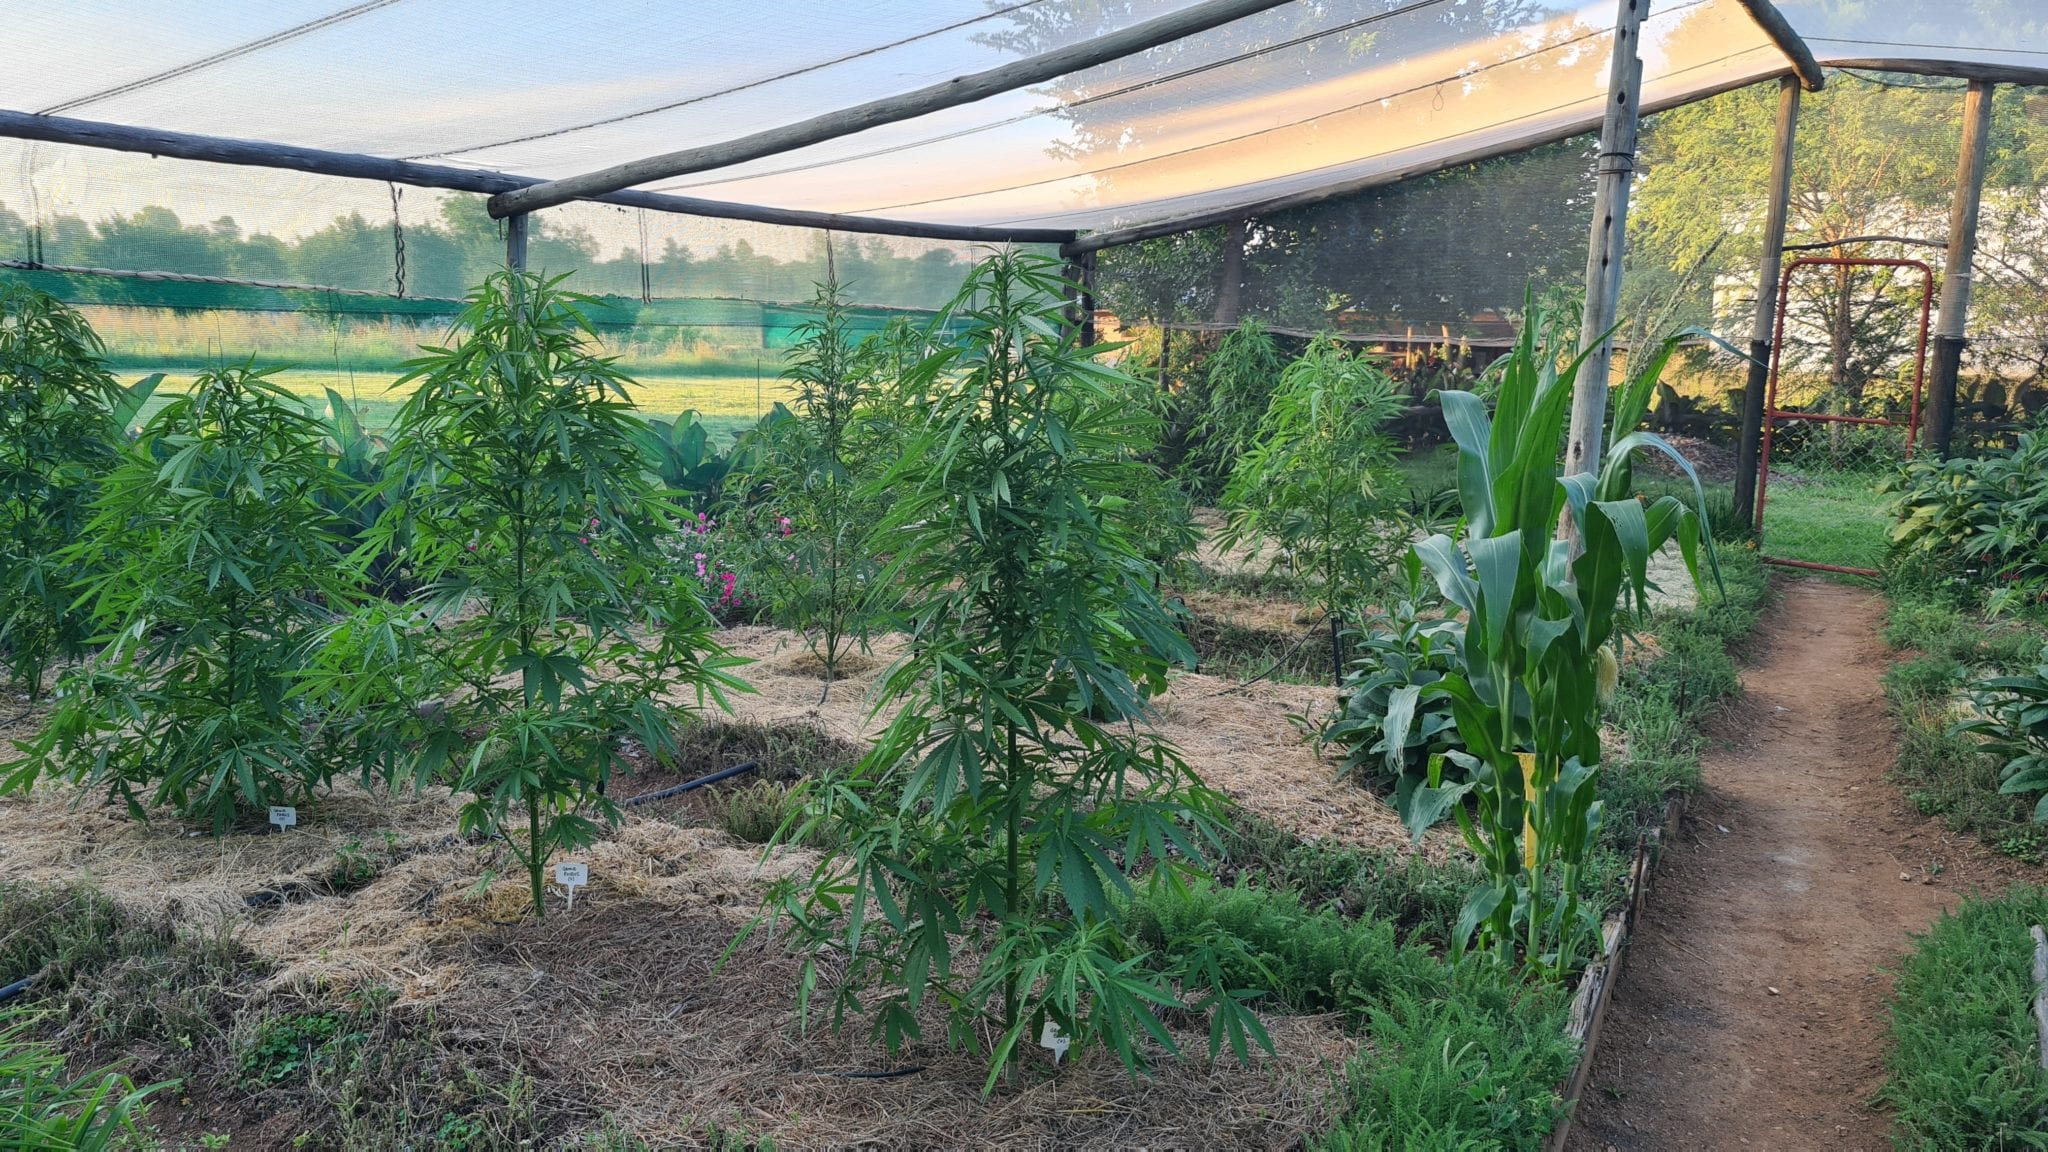 Lawmakers are keeping South Africa's kasinomic cannabis economy in the shadows - private garden